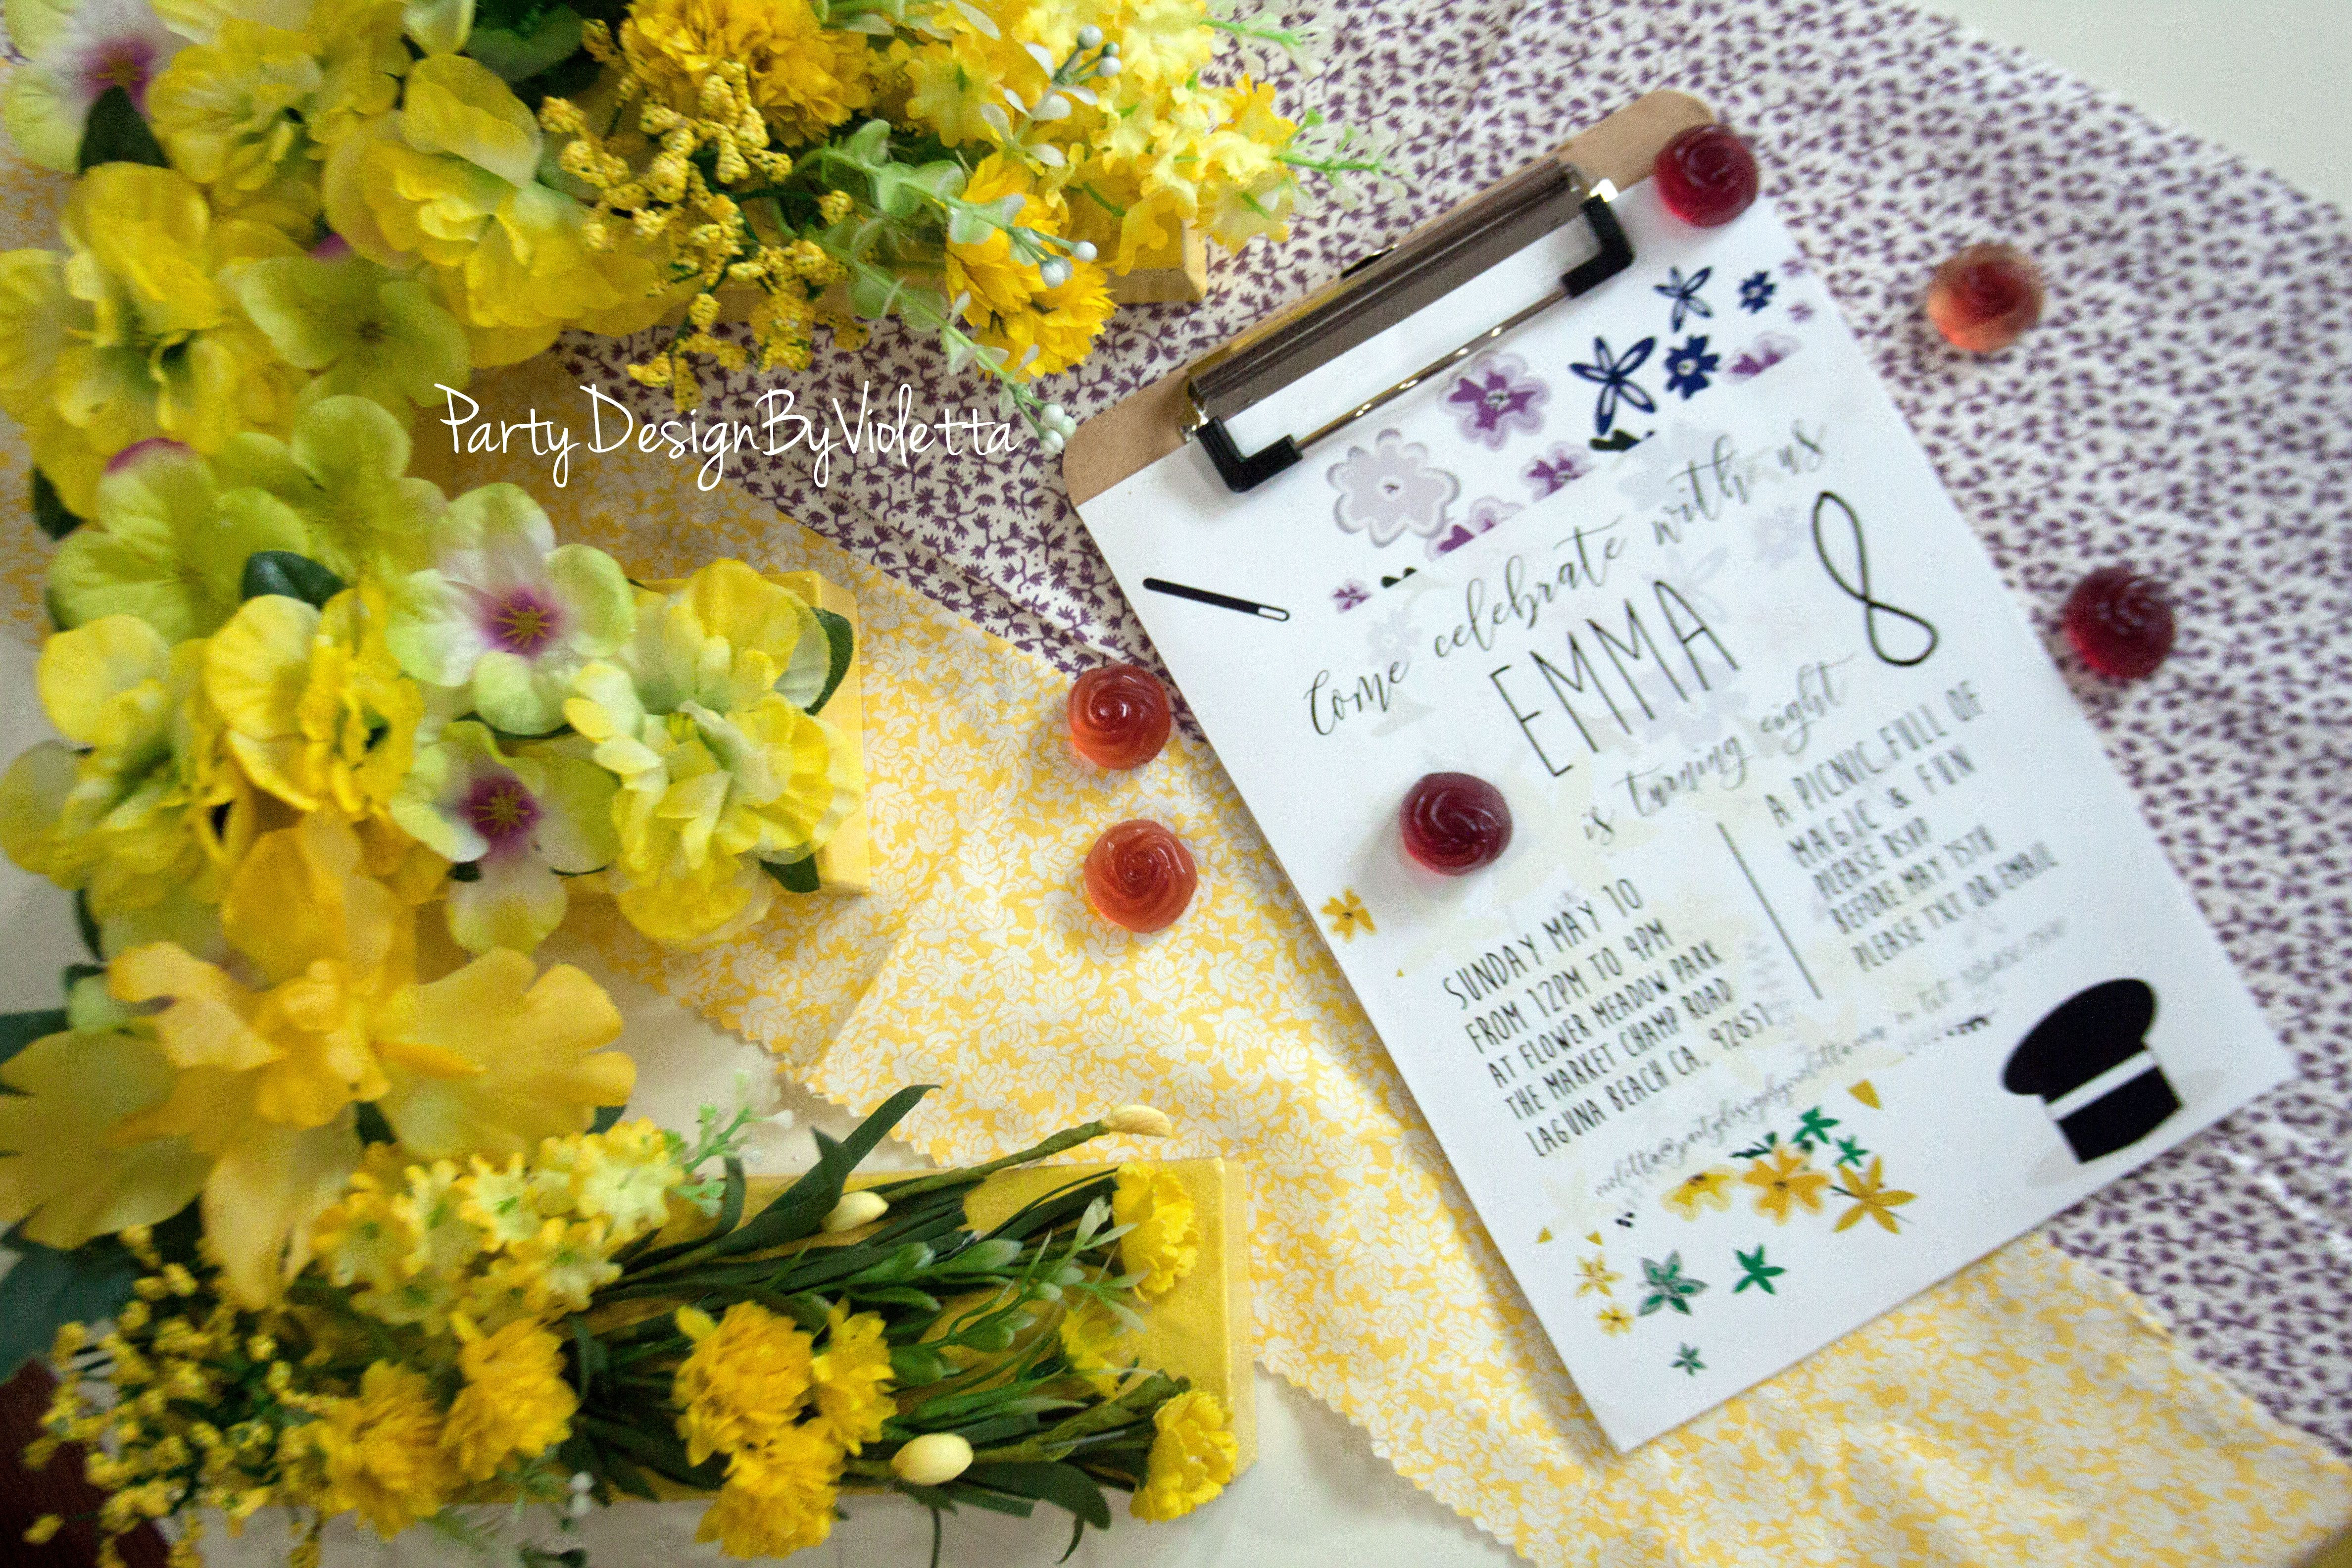 Sunday Flower Delivery Awesome Magic Flower Picnic Party Printable Kit Ready to Use theme Party